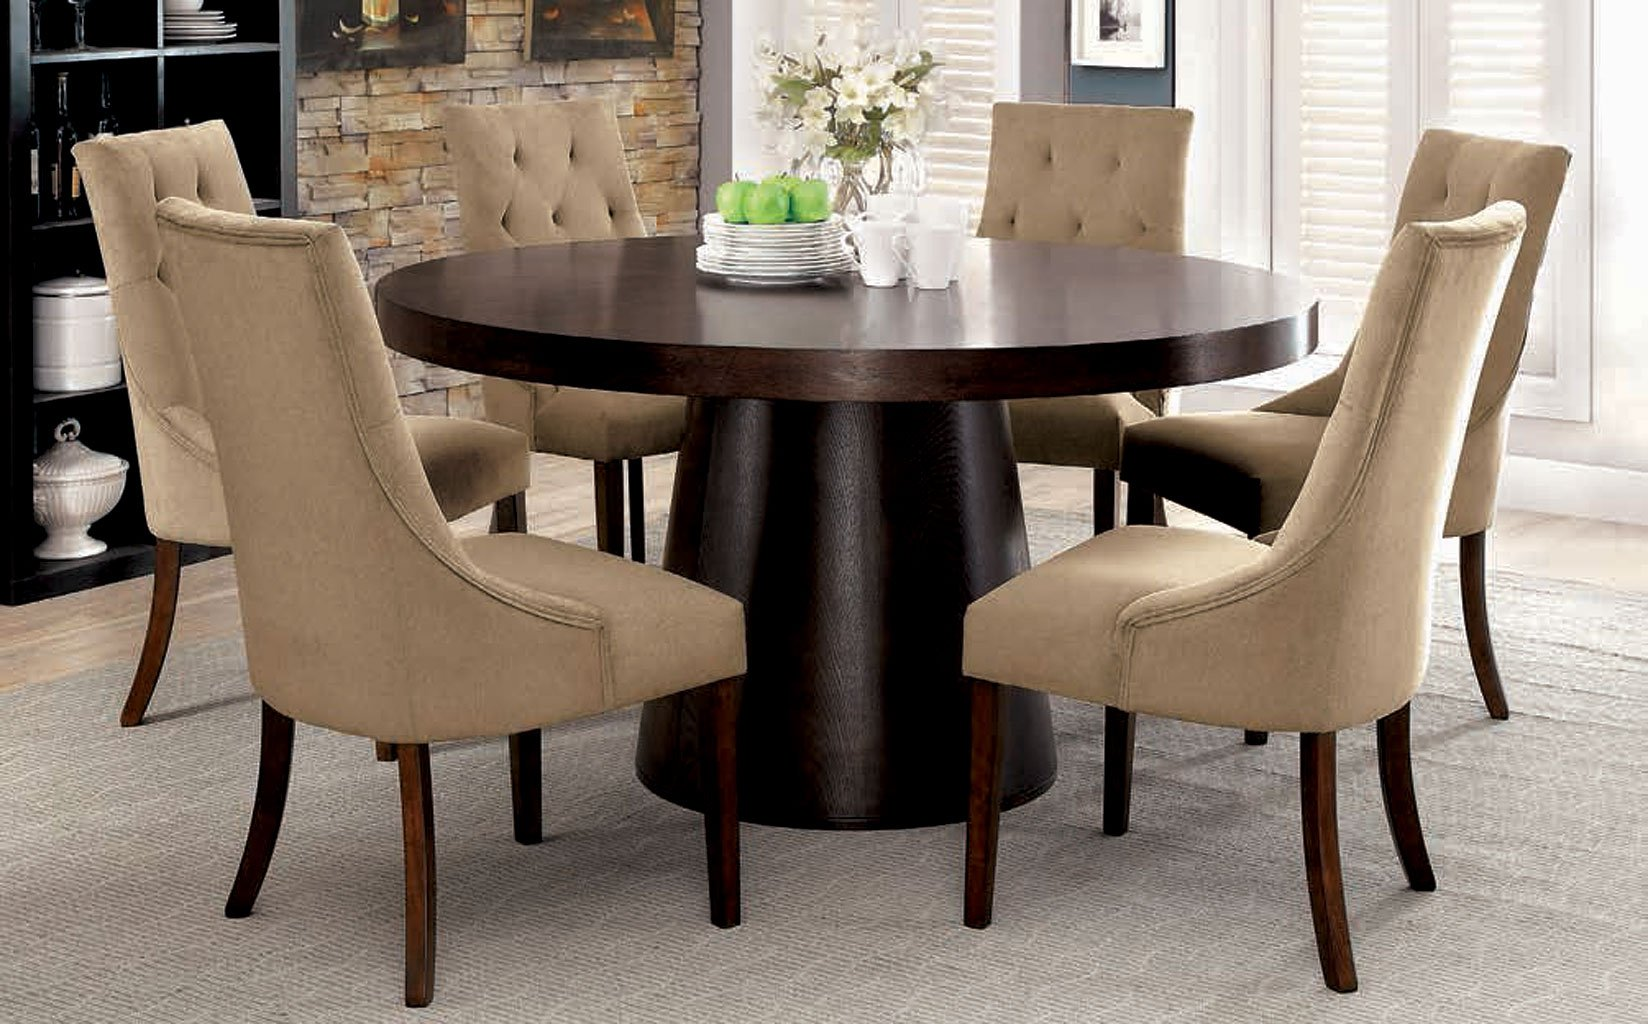 Havana Round Dining Room Set W Light Brown Chairs By